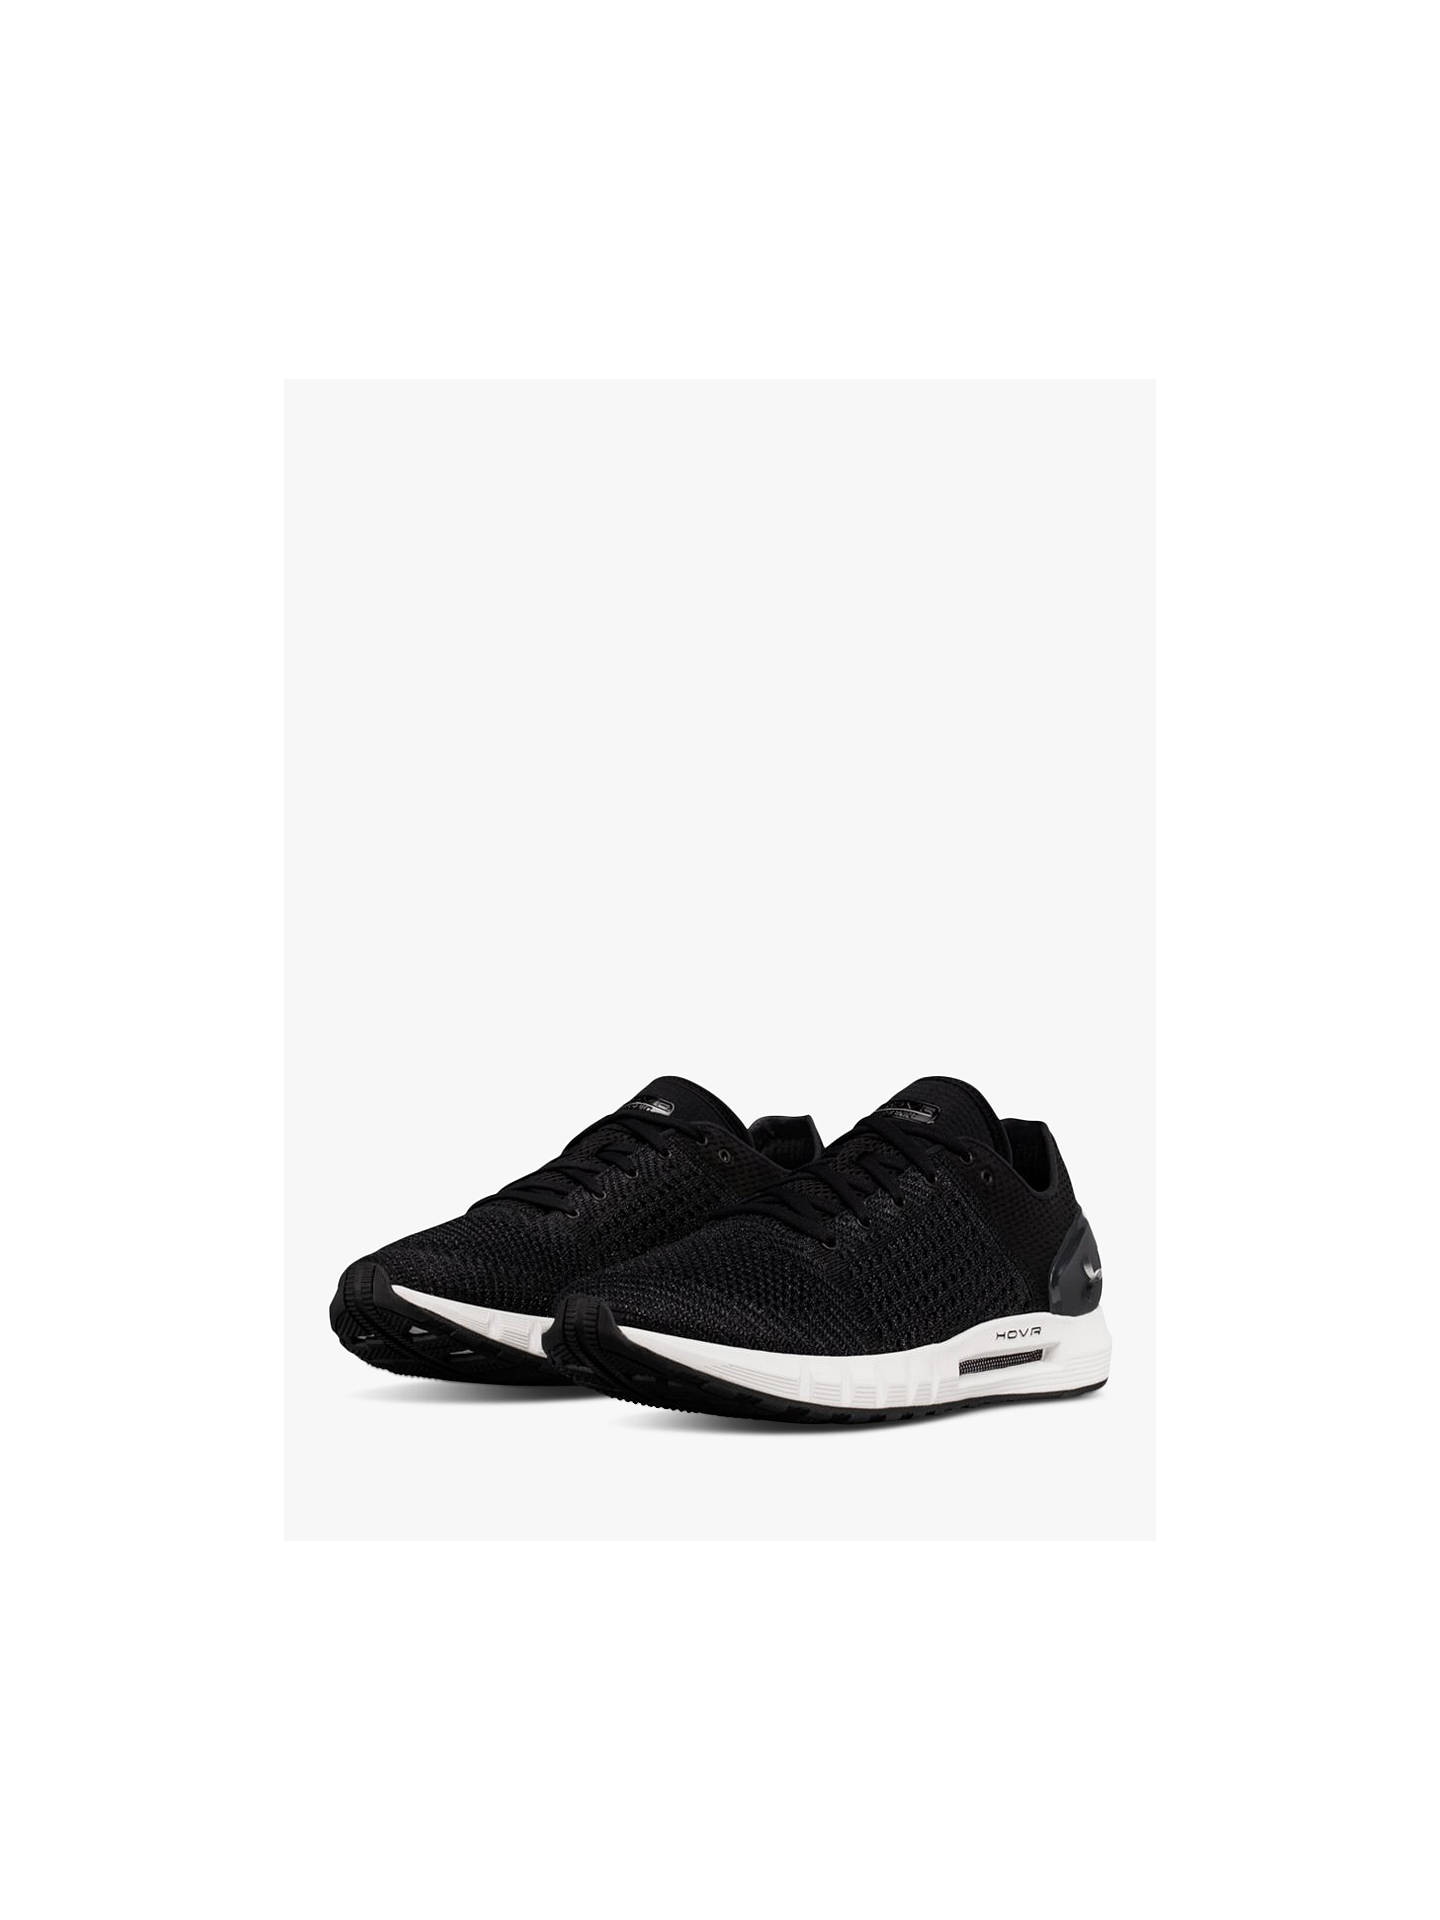 quality design 19a86 1f1ed Under Armour HOVR Sonic Men's Running Shoes, Black/Ivory at ...